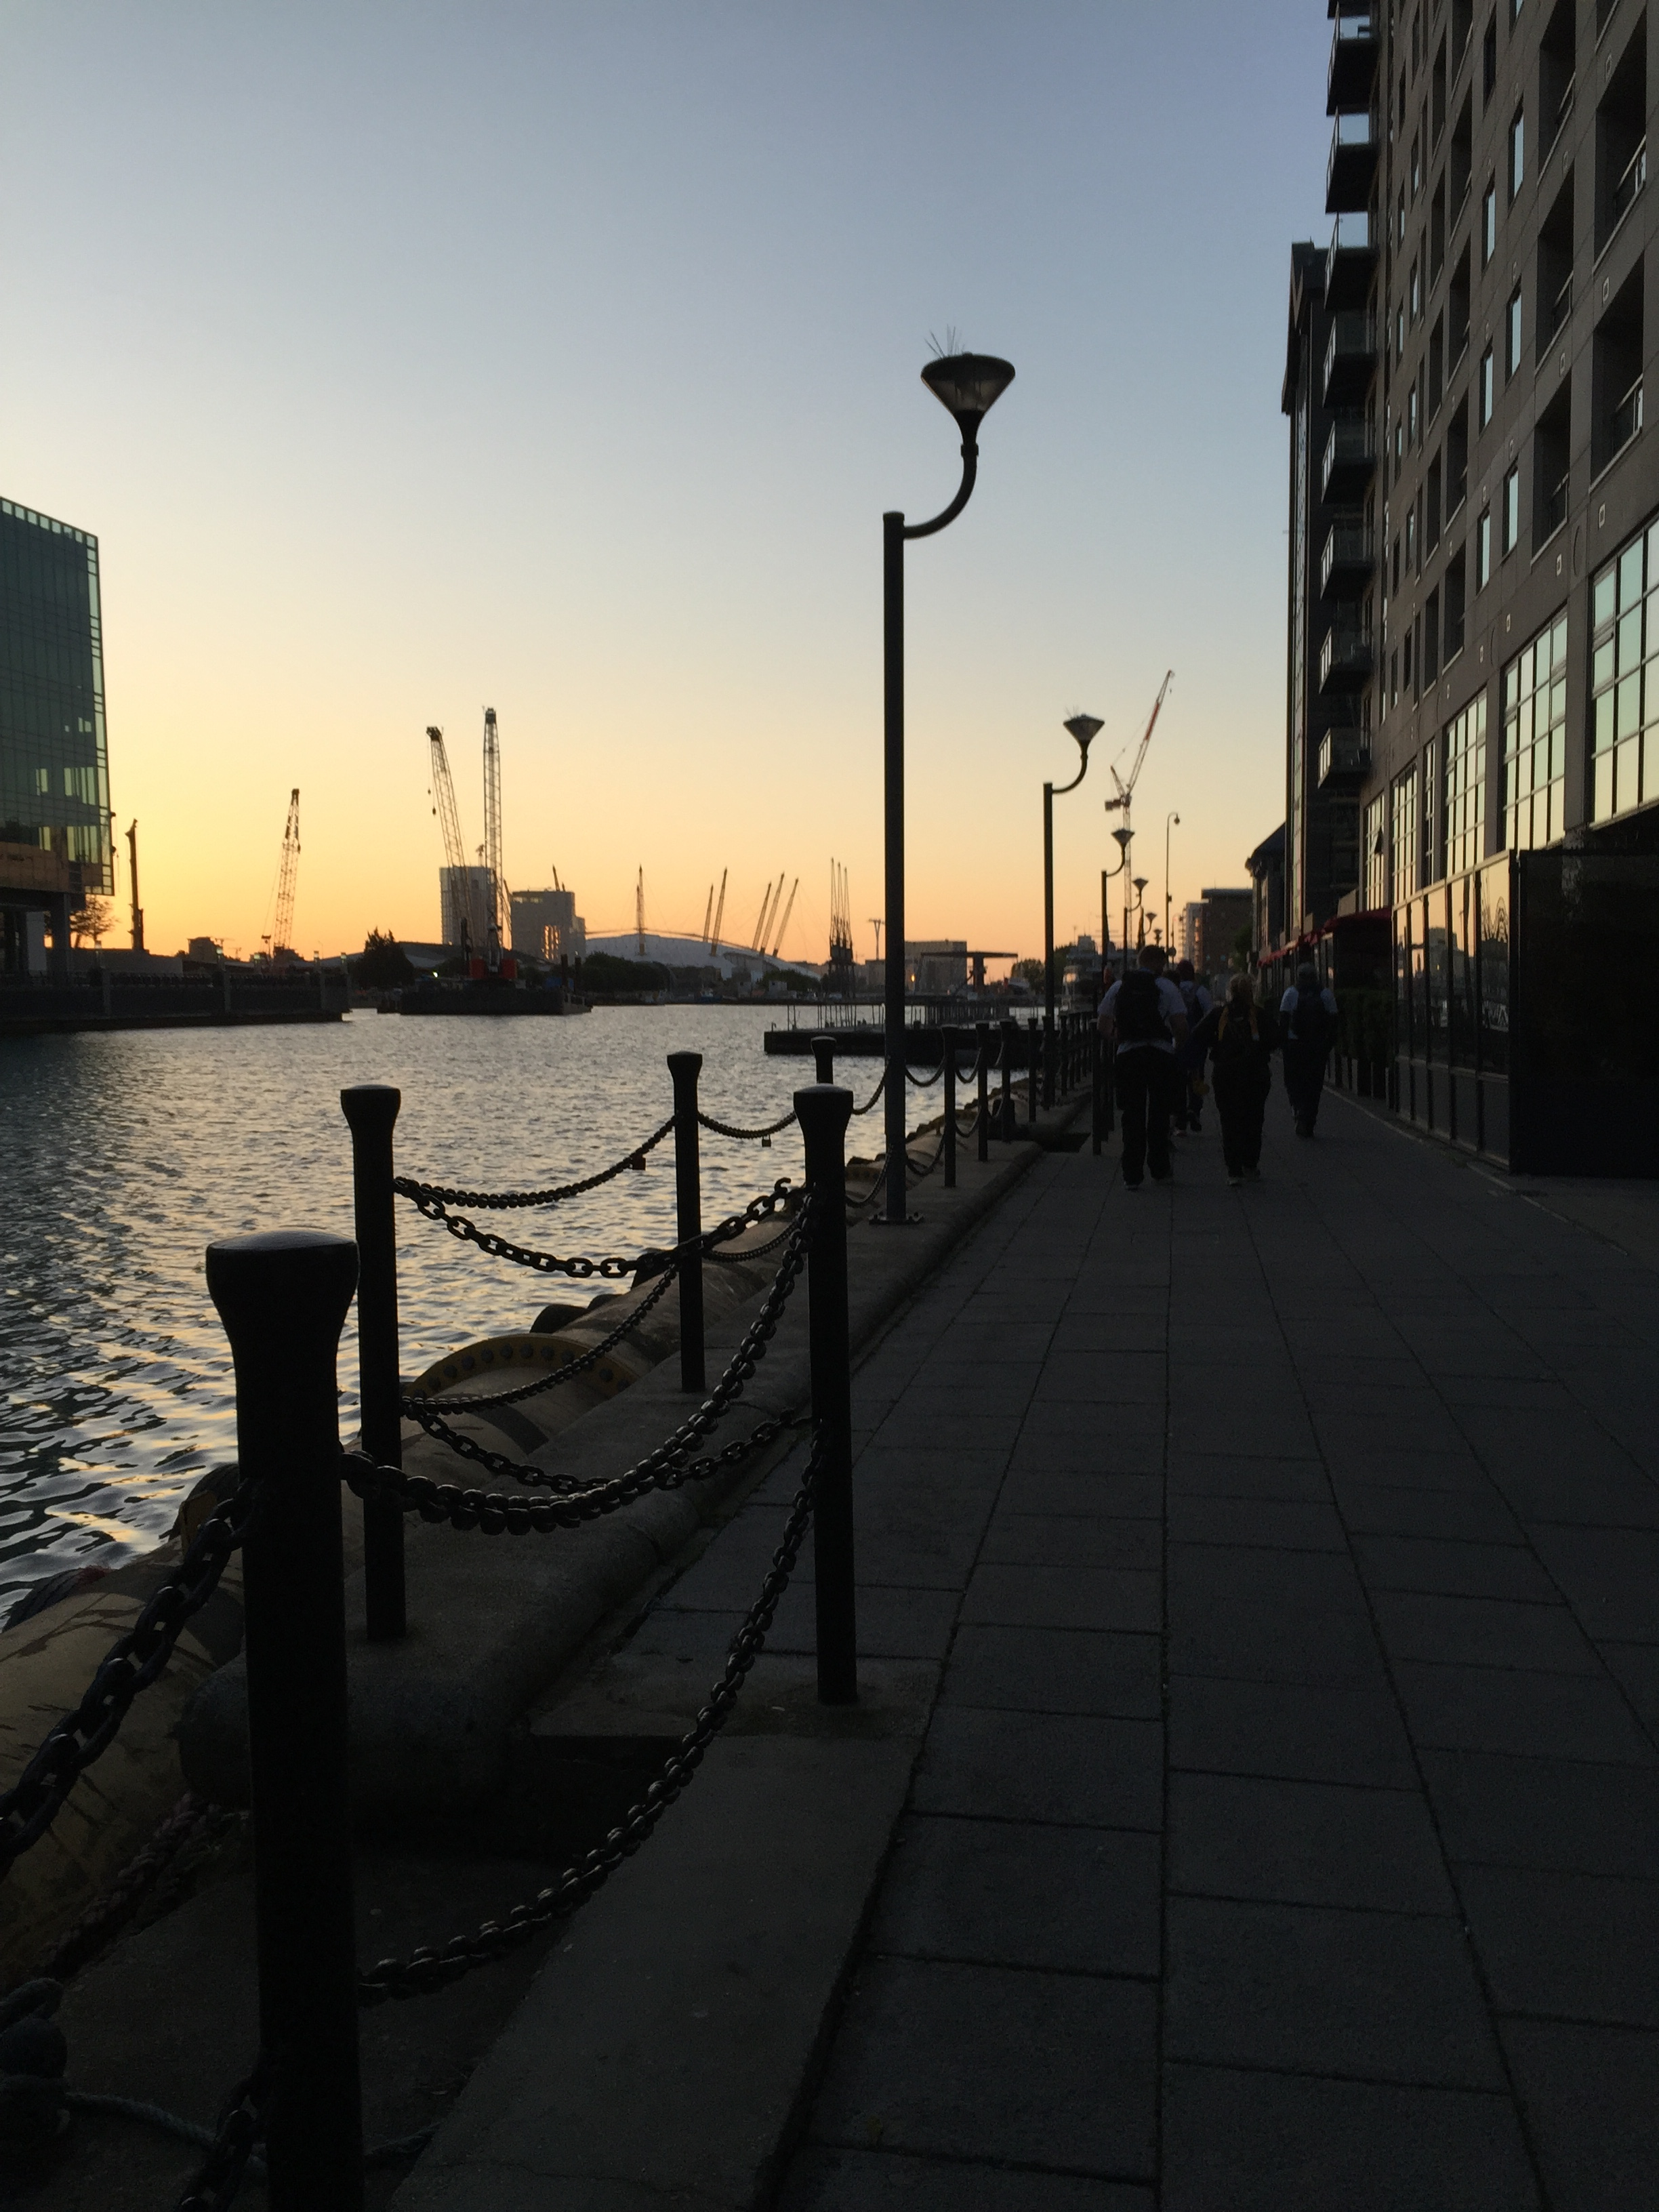 Dawn at Canary Wharf, the o2 Arena on the horizon